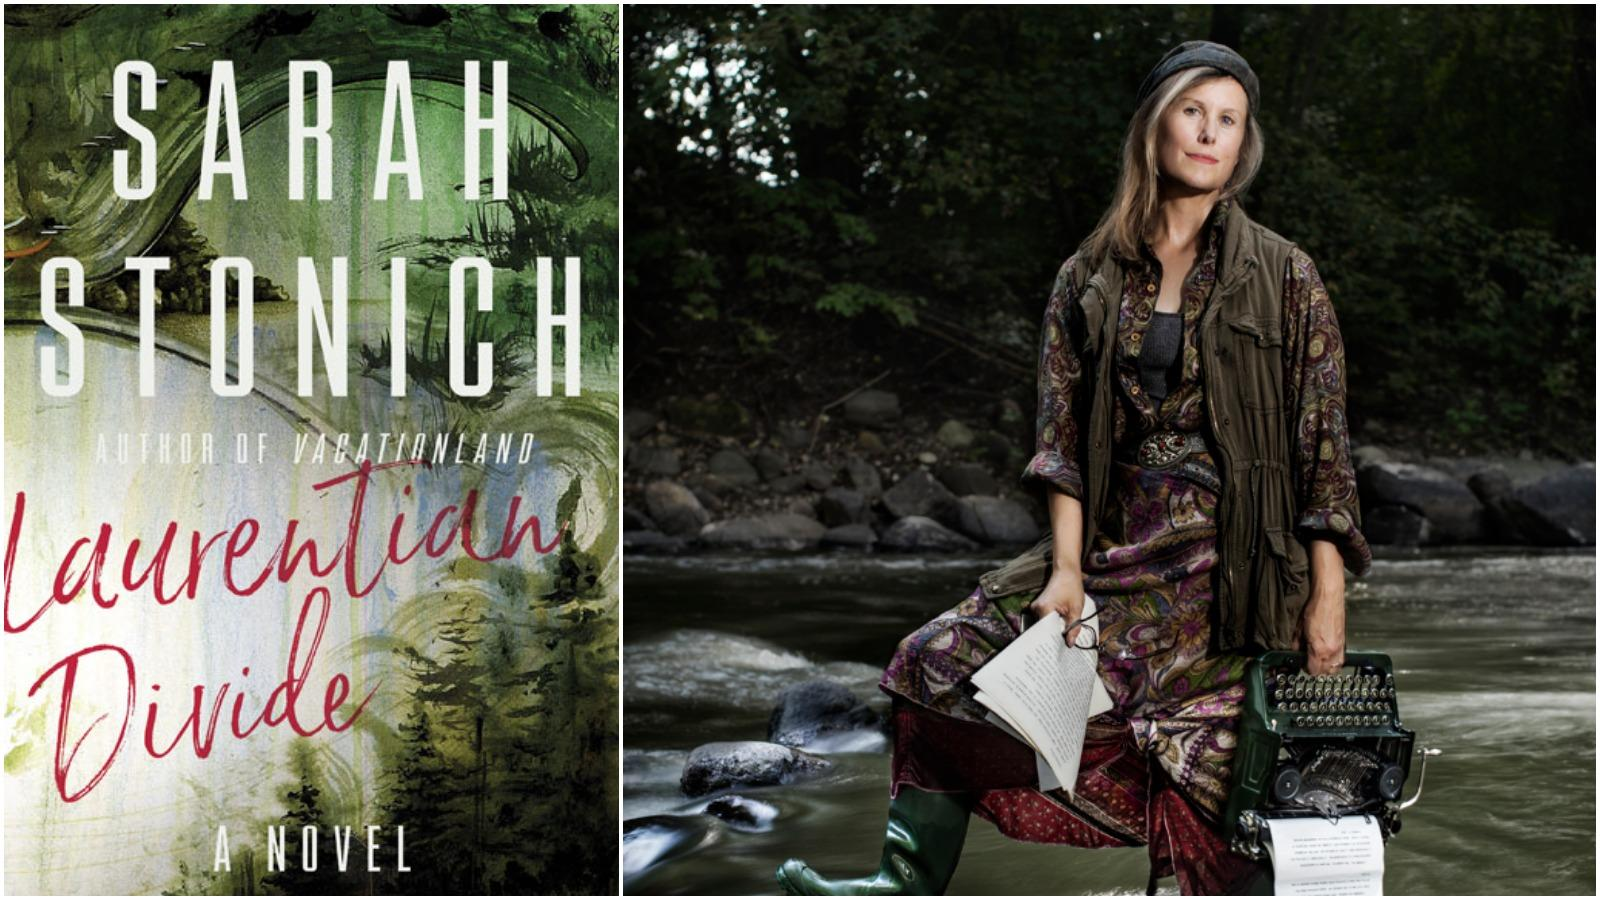 Author Sarah Stonich standing in a stream with a typewriter. Book Cover of Laurentian Divide is adjacent.